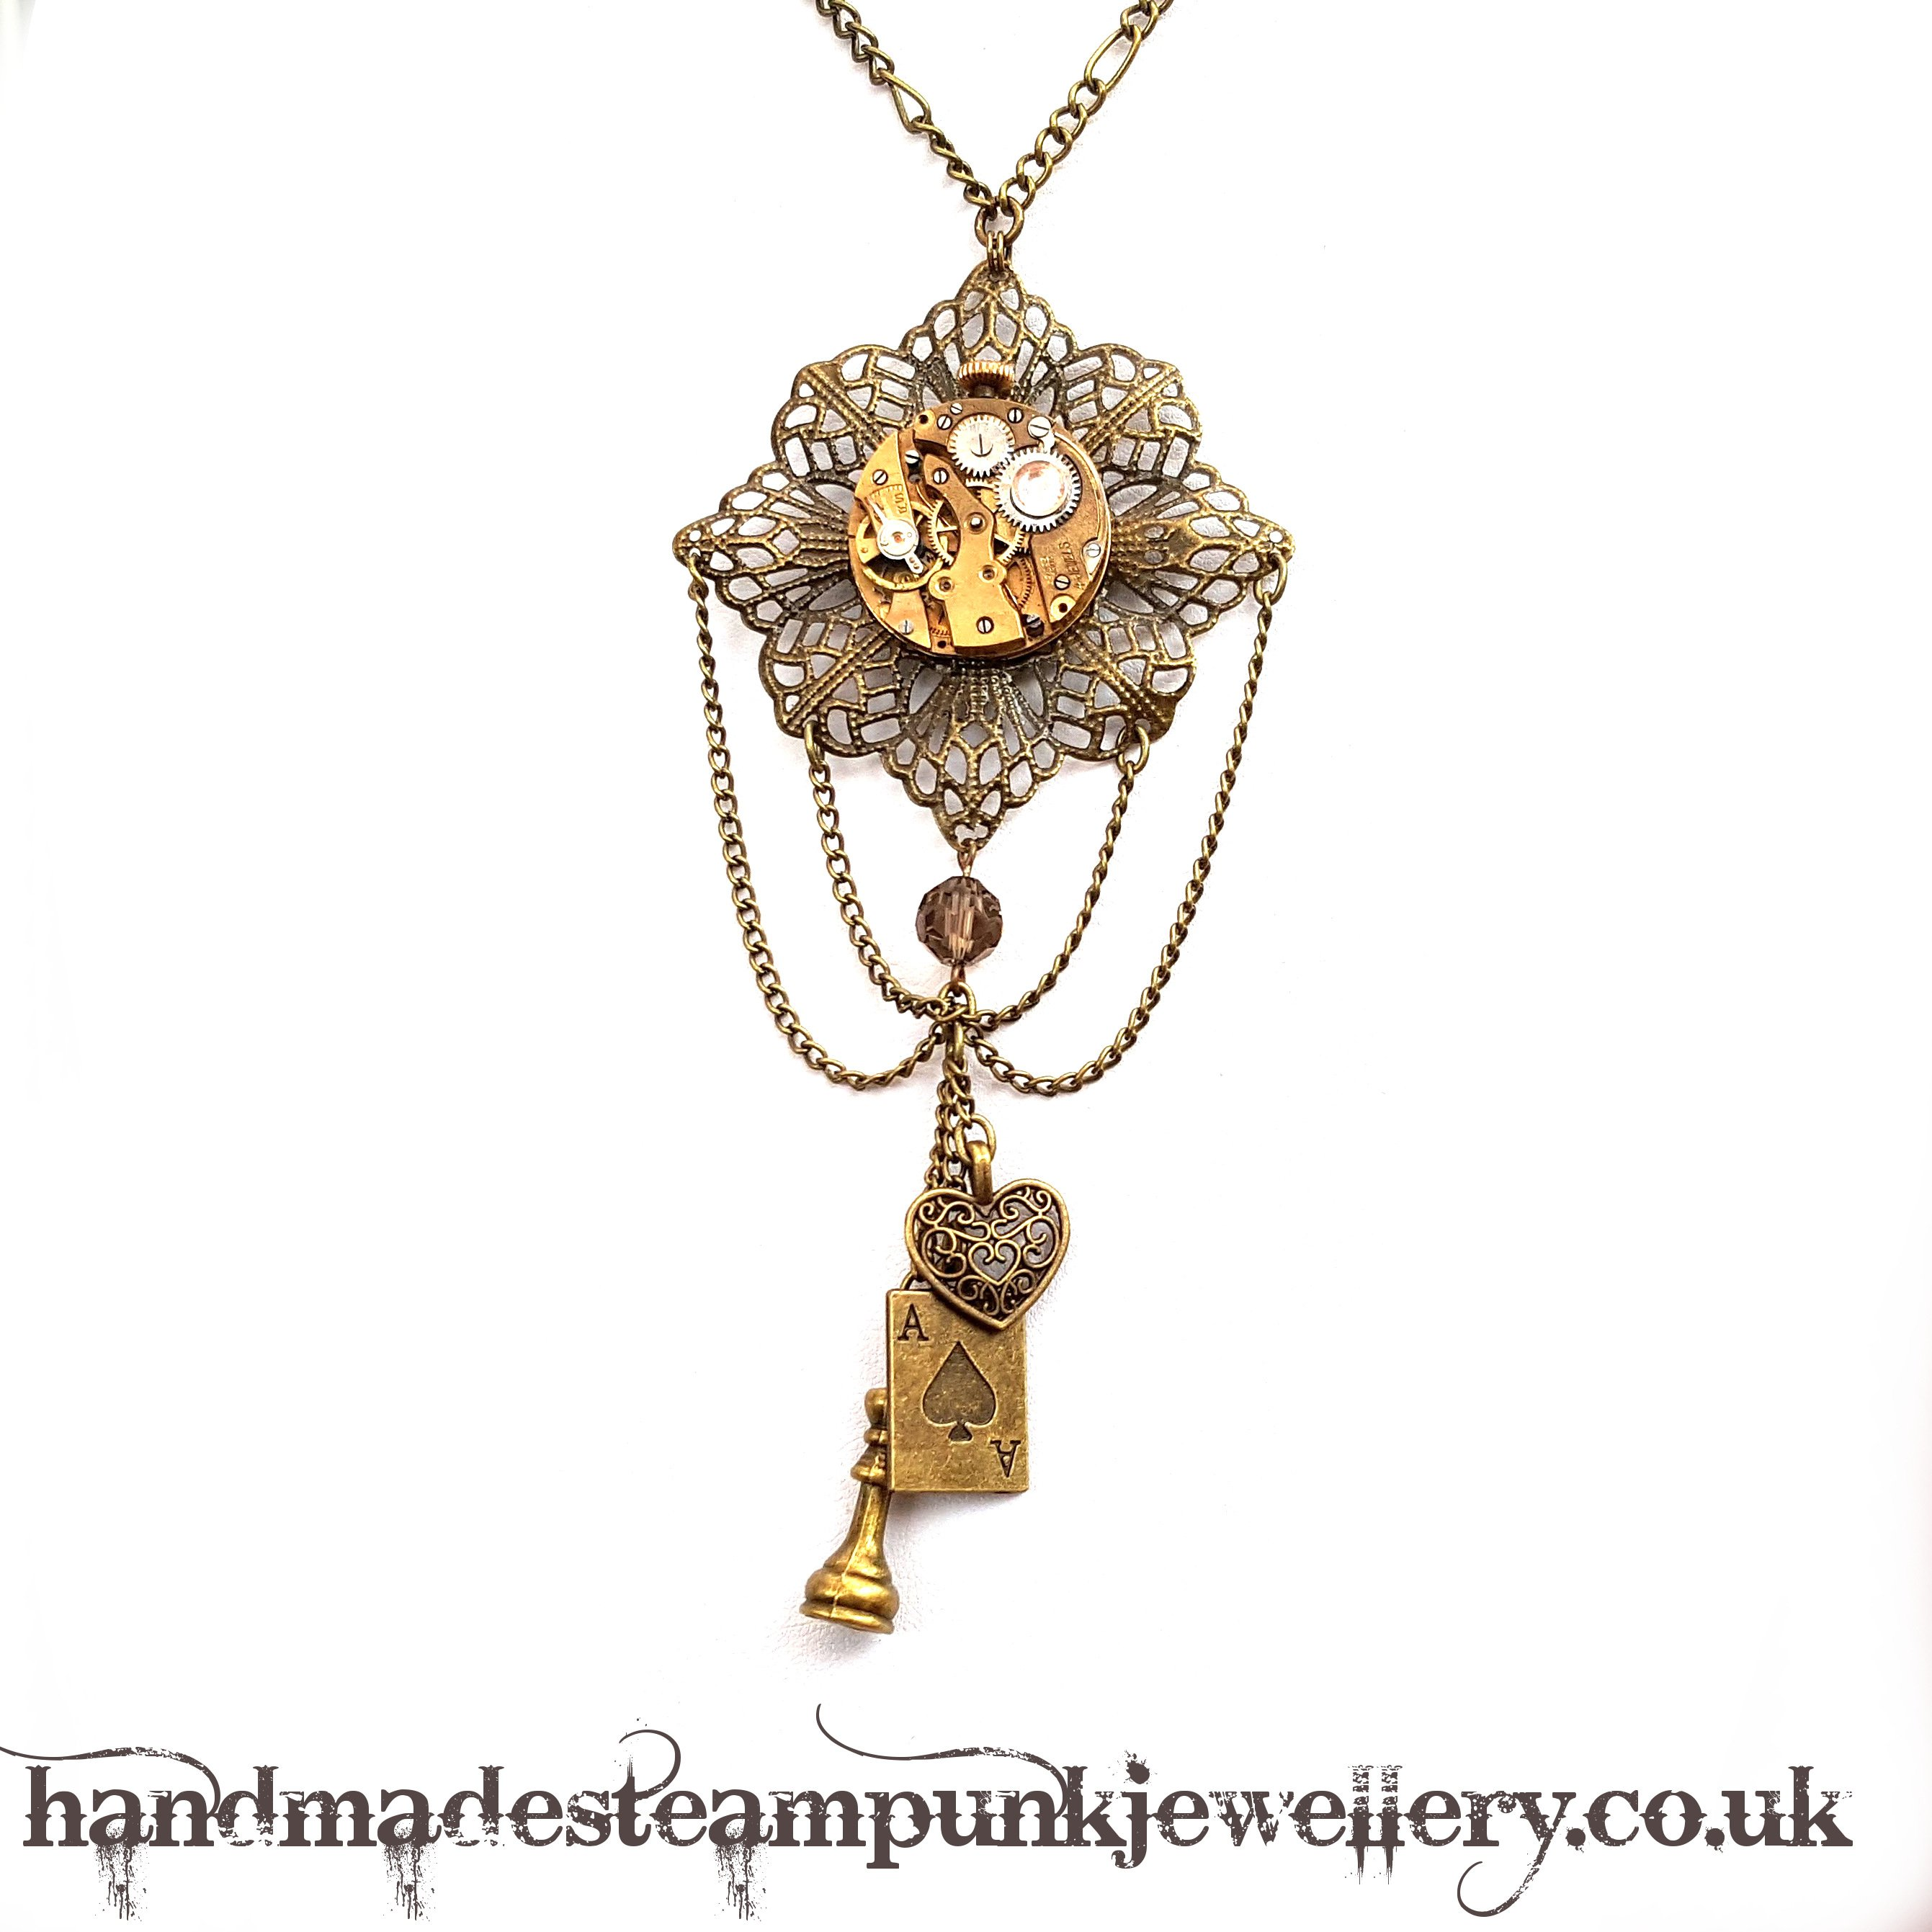 Diamond Filigree Steampunk Necklace - Handmade Steampunk Jewellery